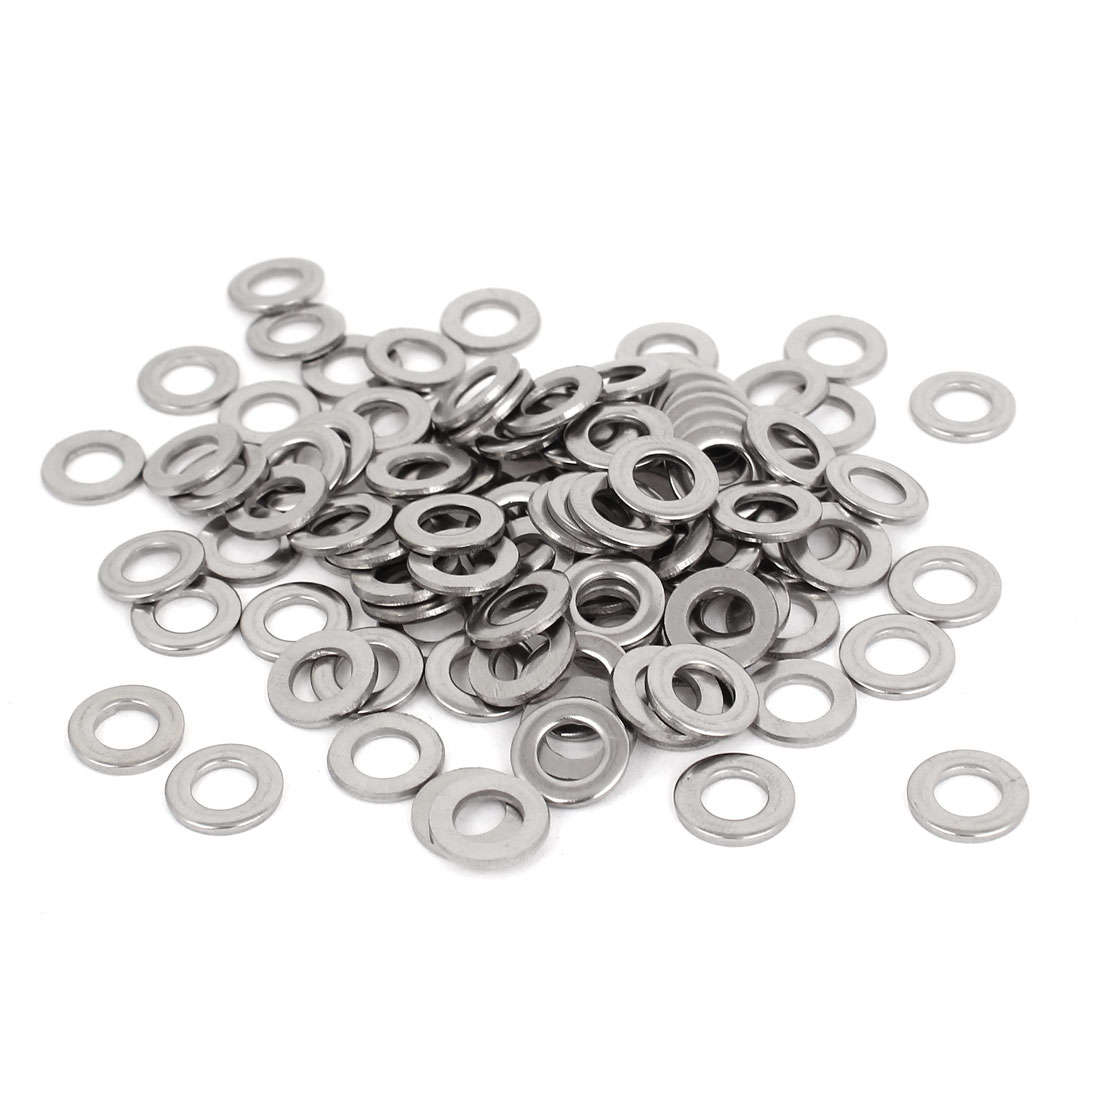 "100pcs Silver Tone 304 Stainless Steel Flat Washer 1/4"" for Screws Bolts"